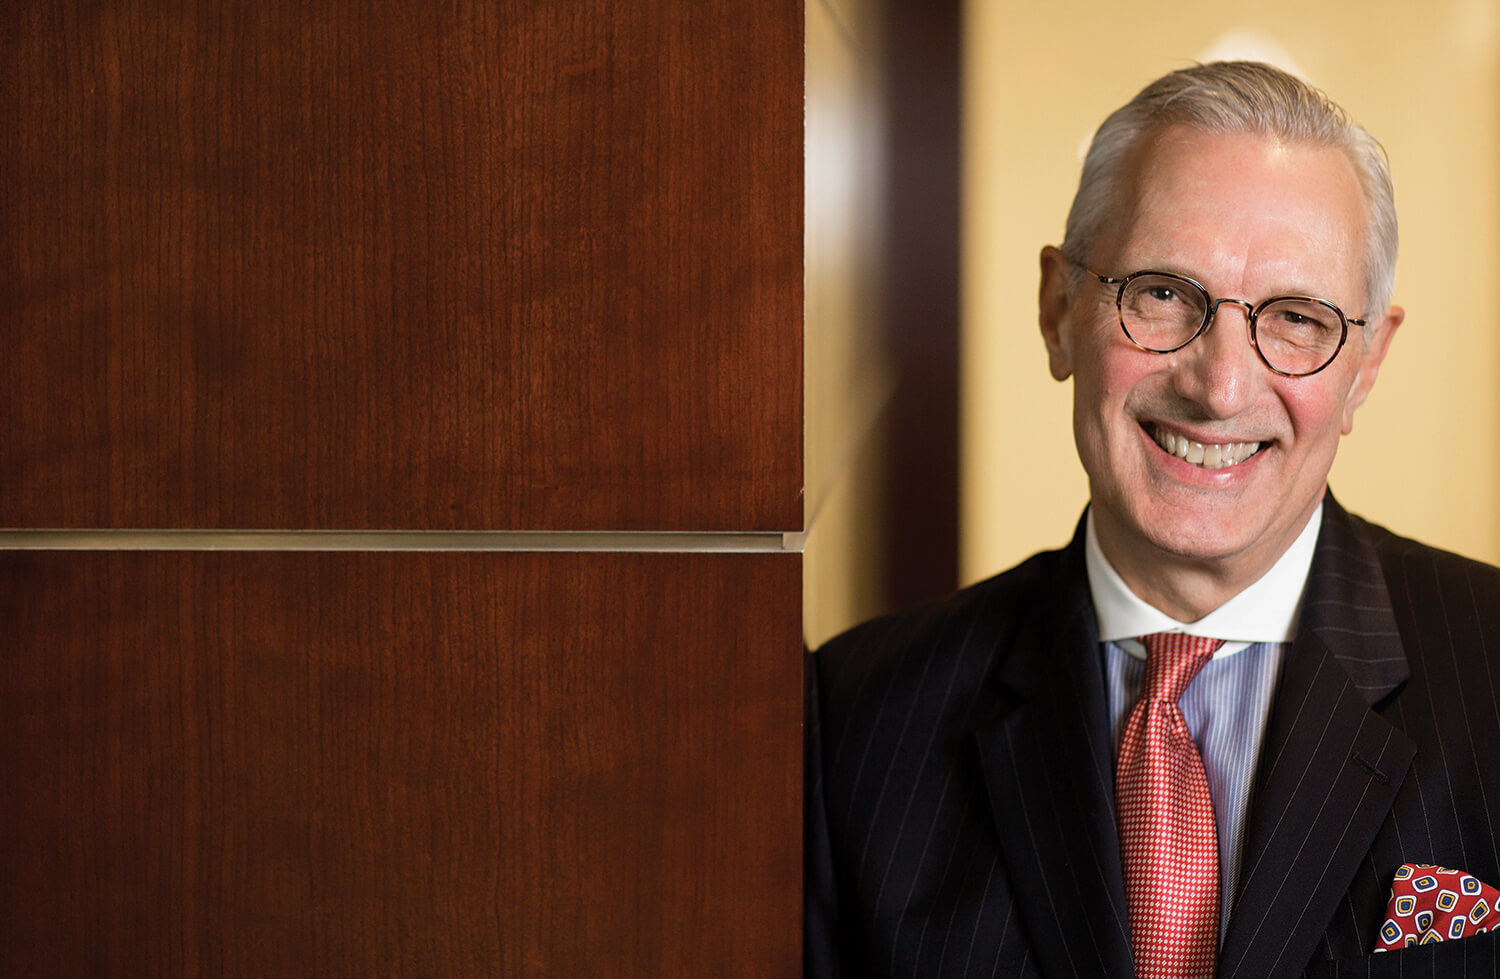 Chuck Stokes is president and CEO of Memorial Hermann Health System and a registered nurse.